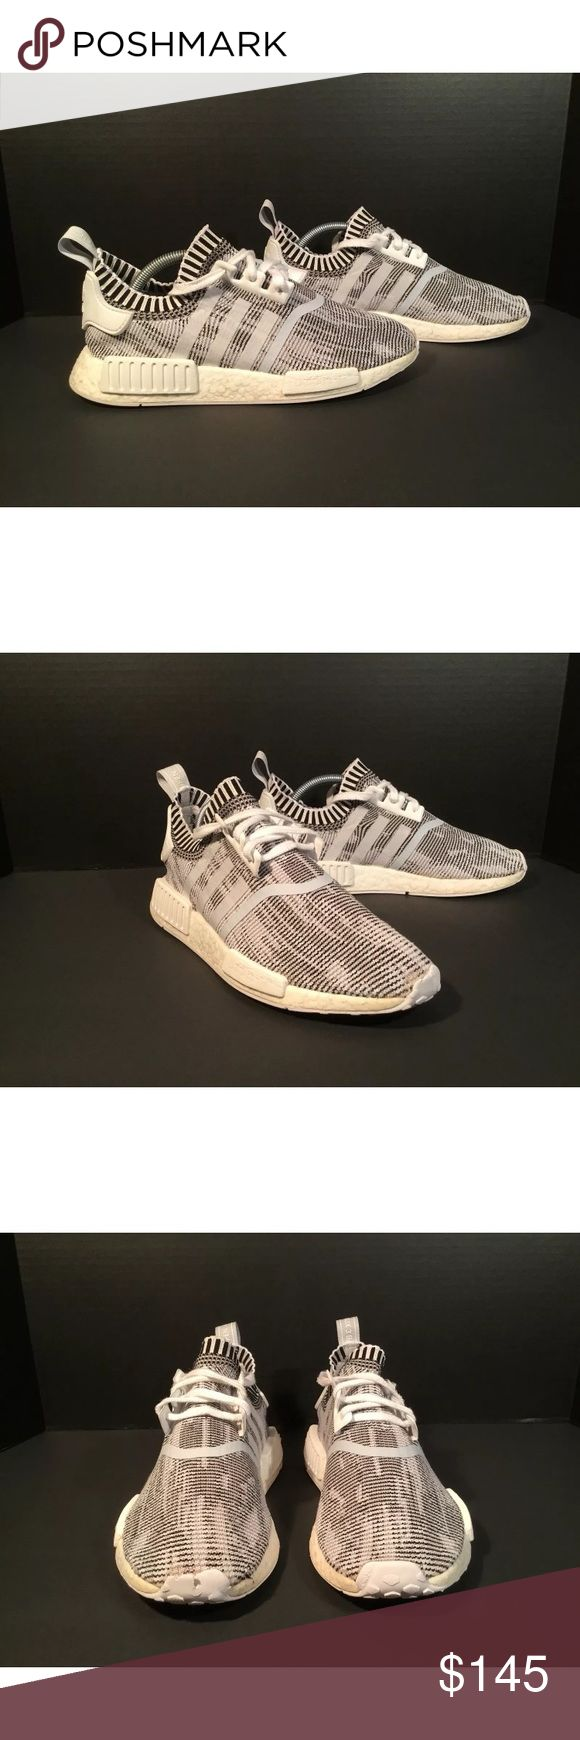 yeezy boost shoes size 13 adidas nmd r1 pk french beige